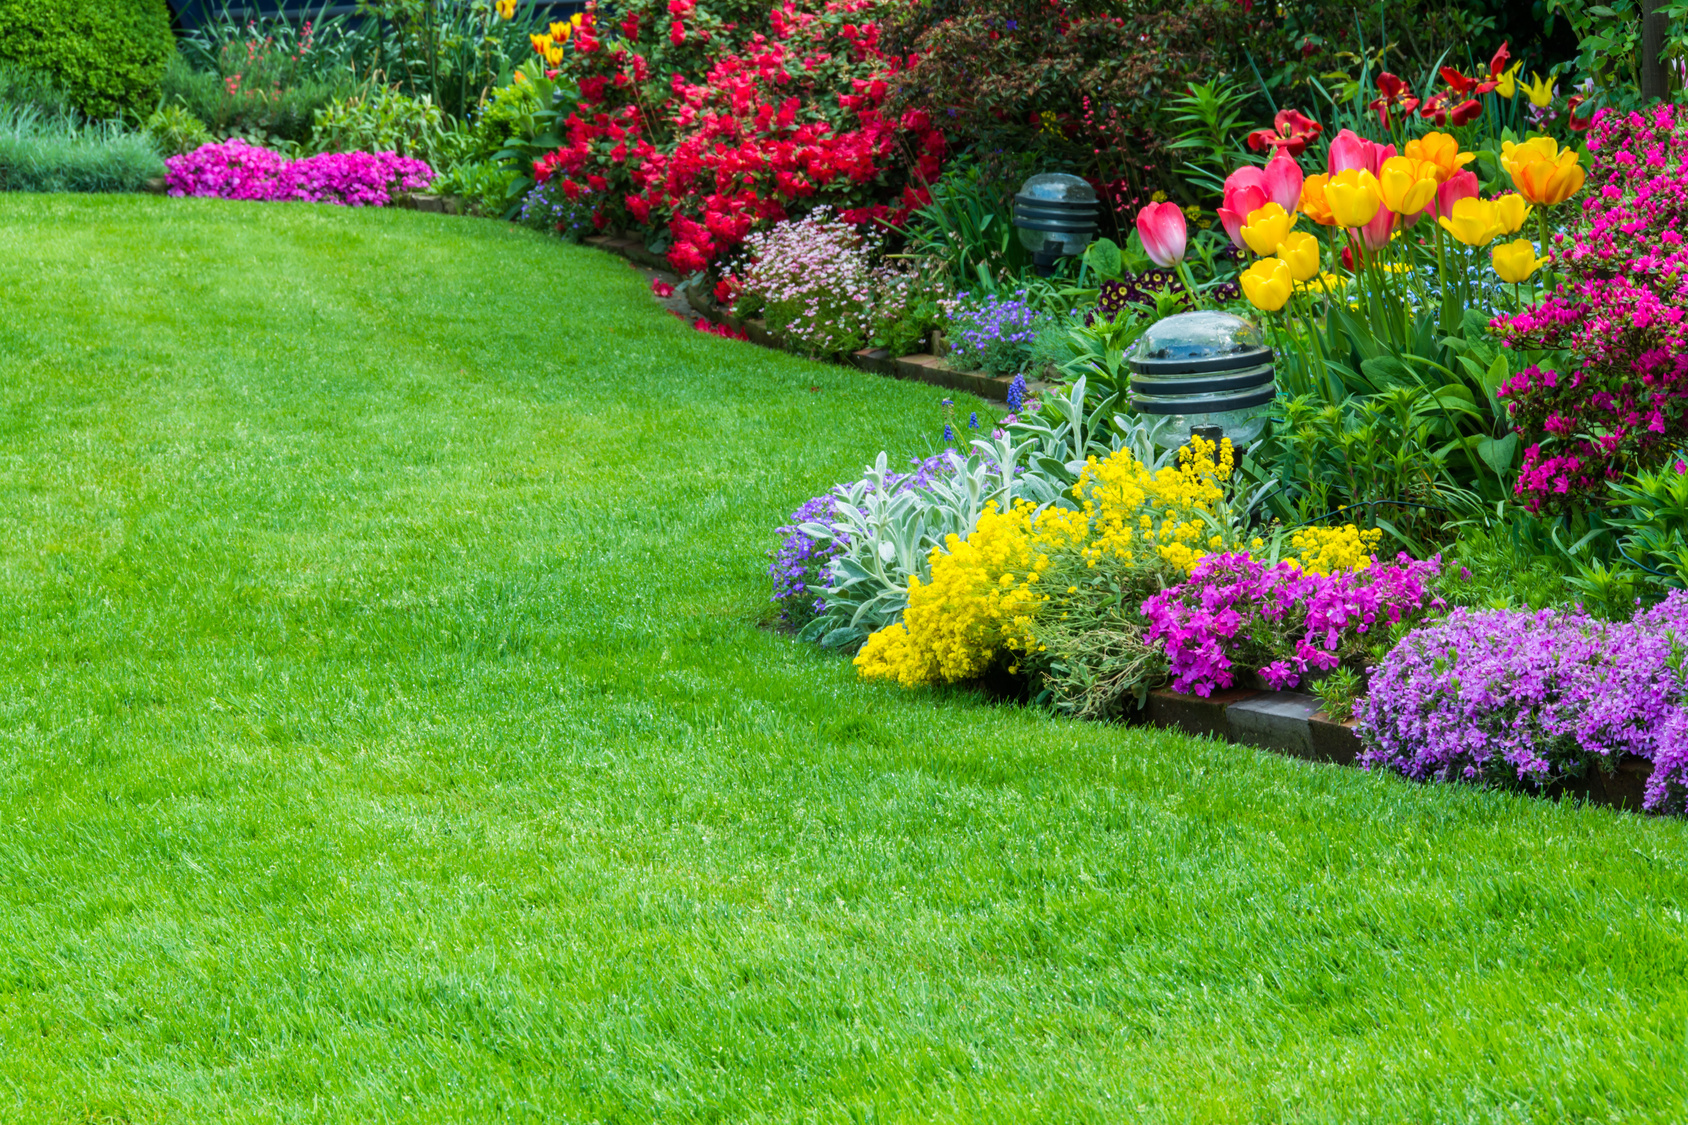 Top 4 Benefits of Garden Maintenance Services Dan330